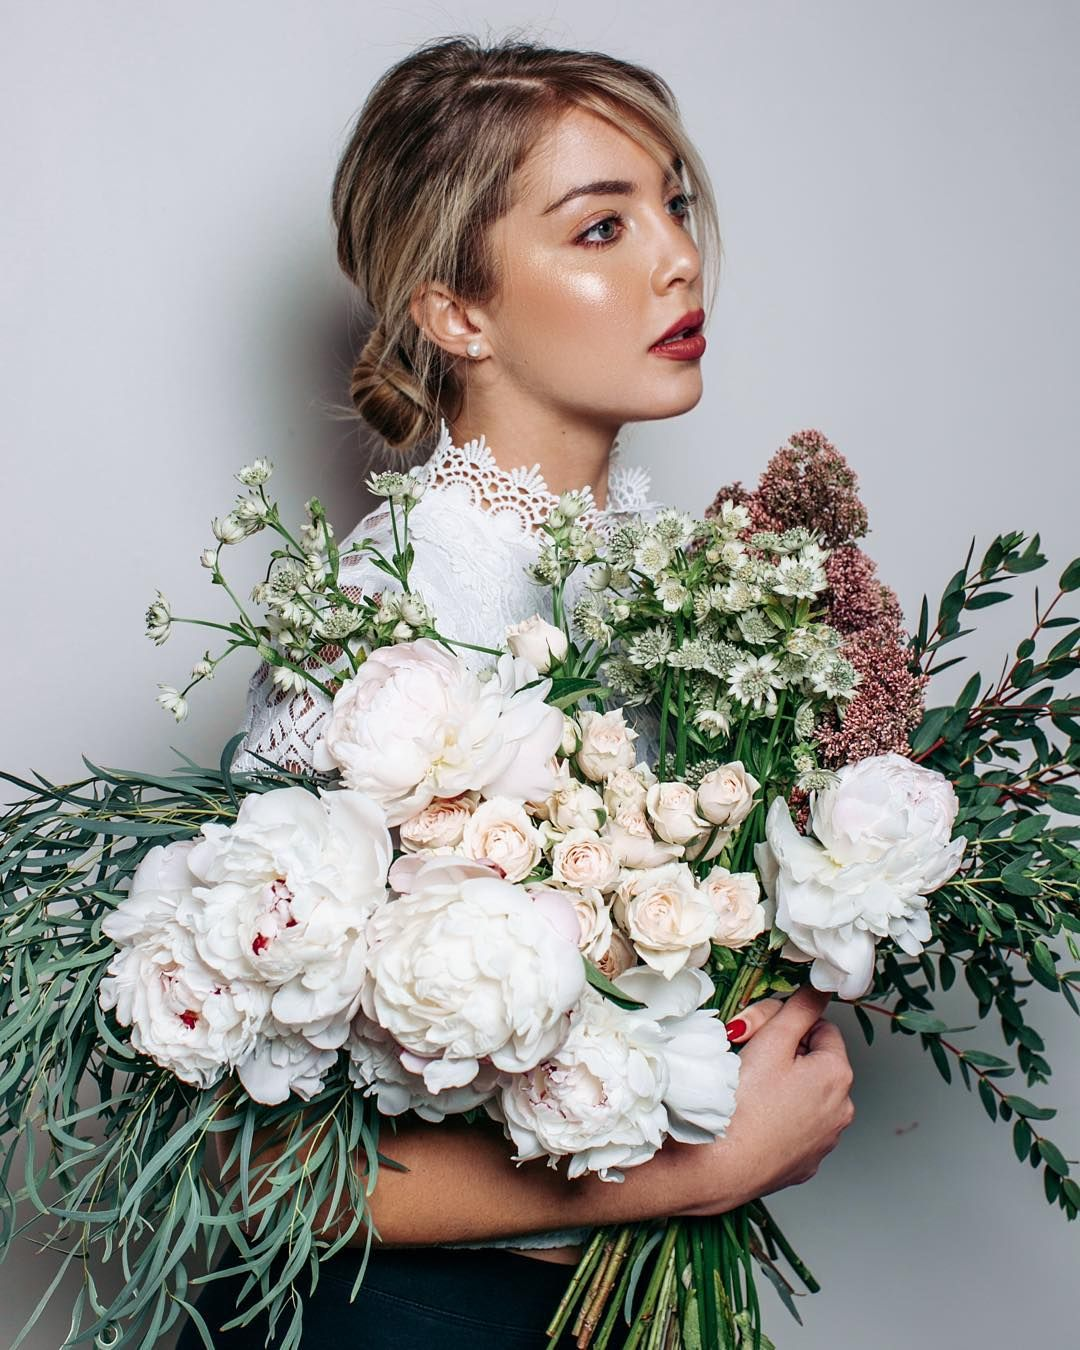 Flower bouquet by florists @maisonfarola / makeup/hair @doaadahoud / model @kristiinatocco - bts video from this shoot on my YT next week by jessicakobeissi